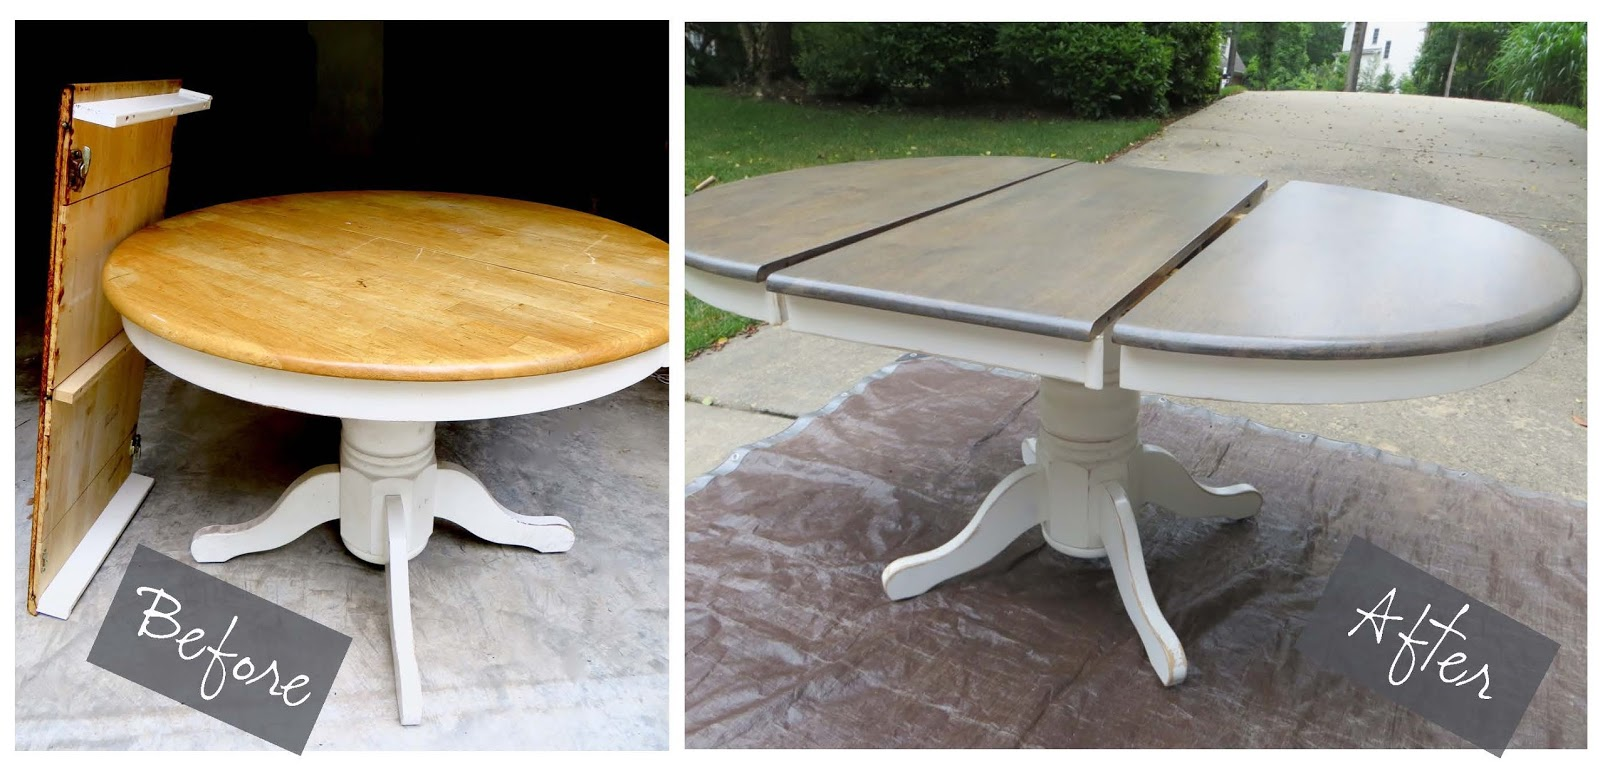 pedestal table refinished itu0027s easy - Refinish Table